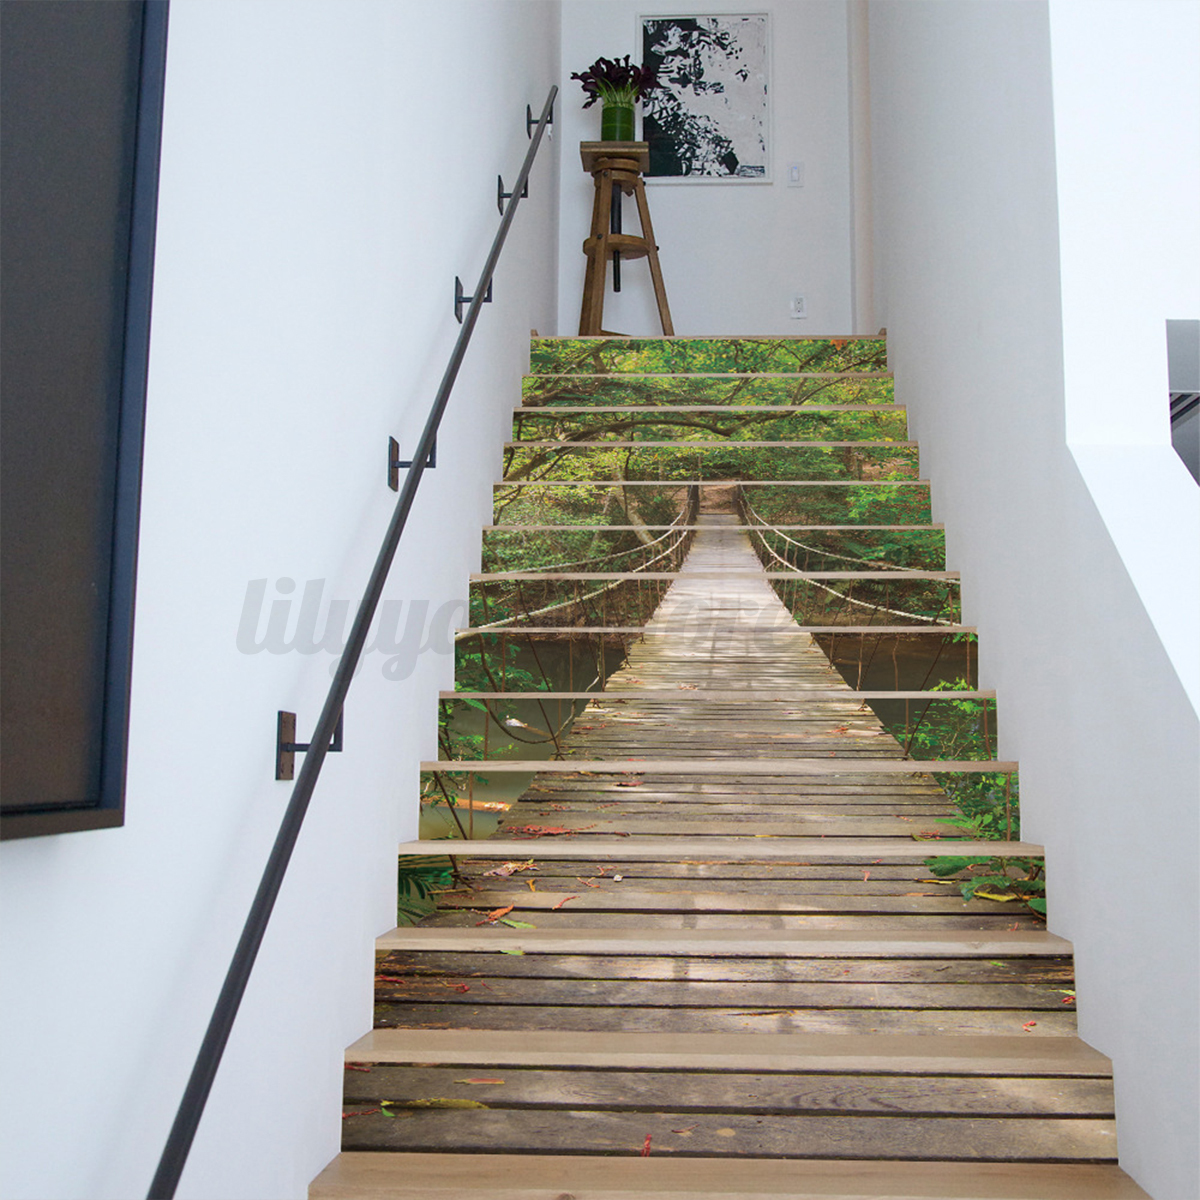 Architect 3d Garden And Exterior 20: 13Pcs 3D Landscape Stair Risers Decor Photo Mural Decal